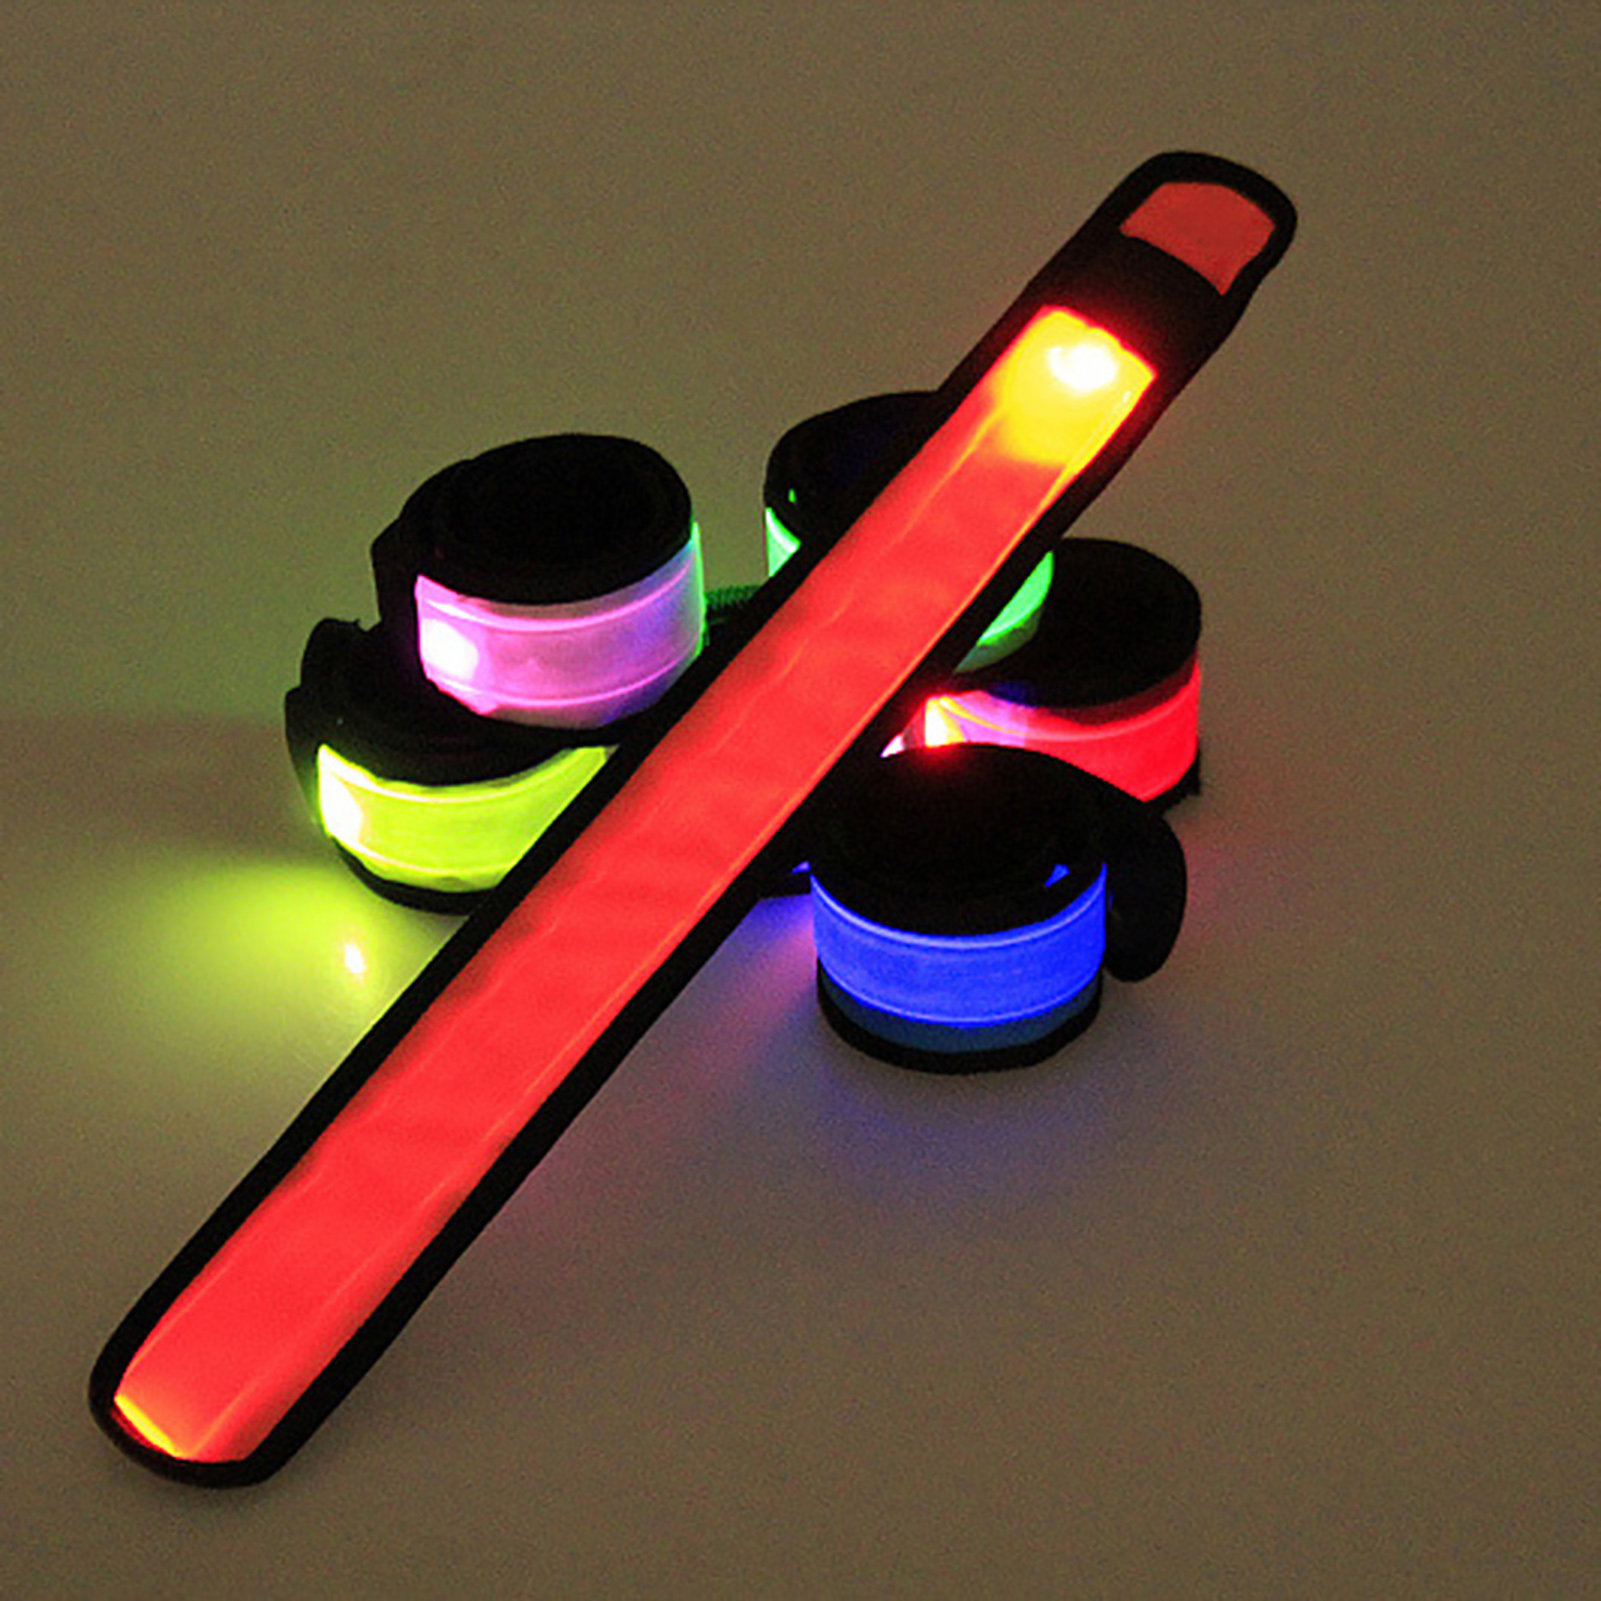 LED-Flashing-Light-Up-Glow-Bracelet-Wristband-Vocal-Concert-Party-Props-Gift-HOT thumbnail 2